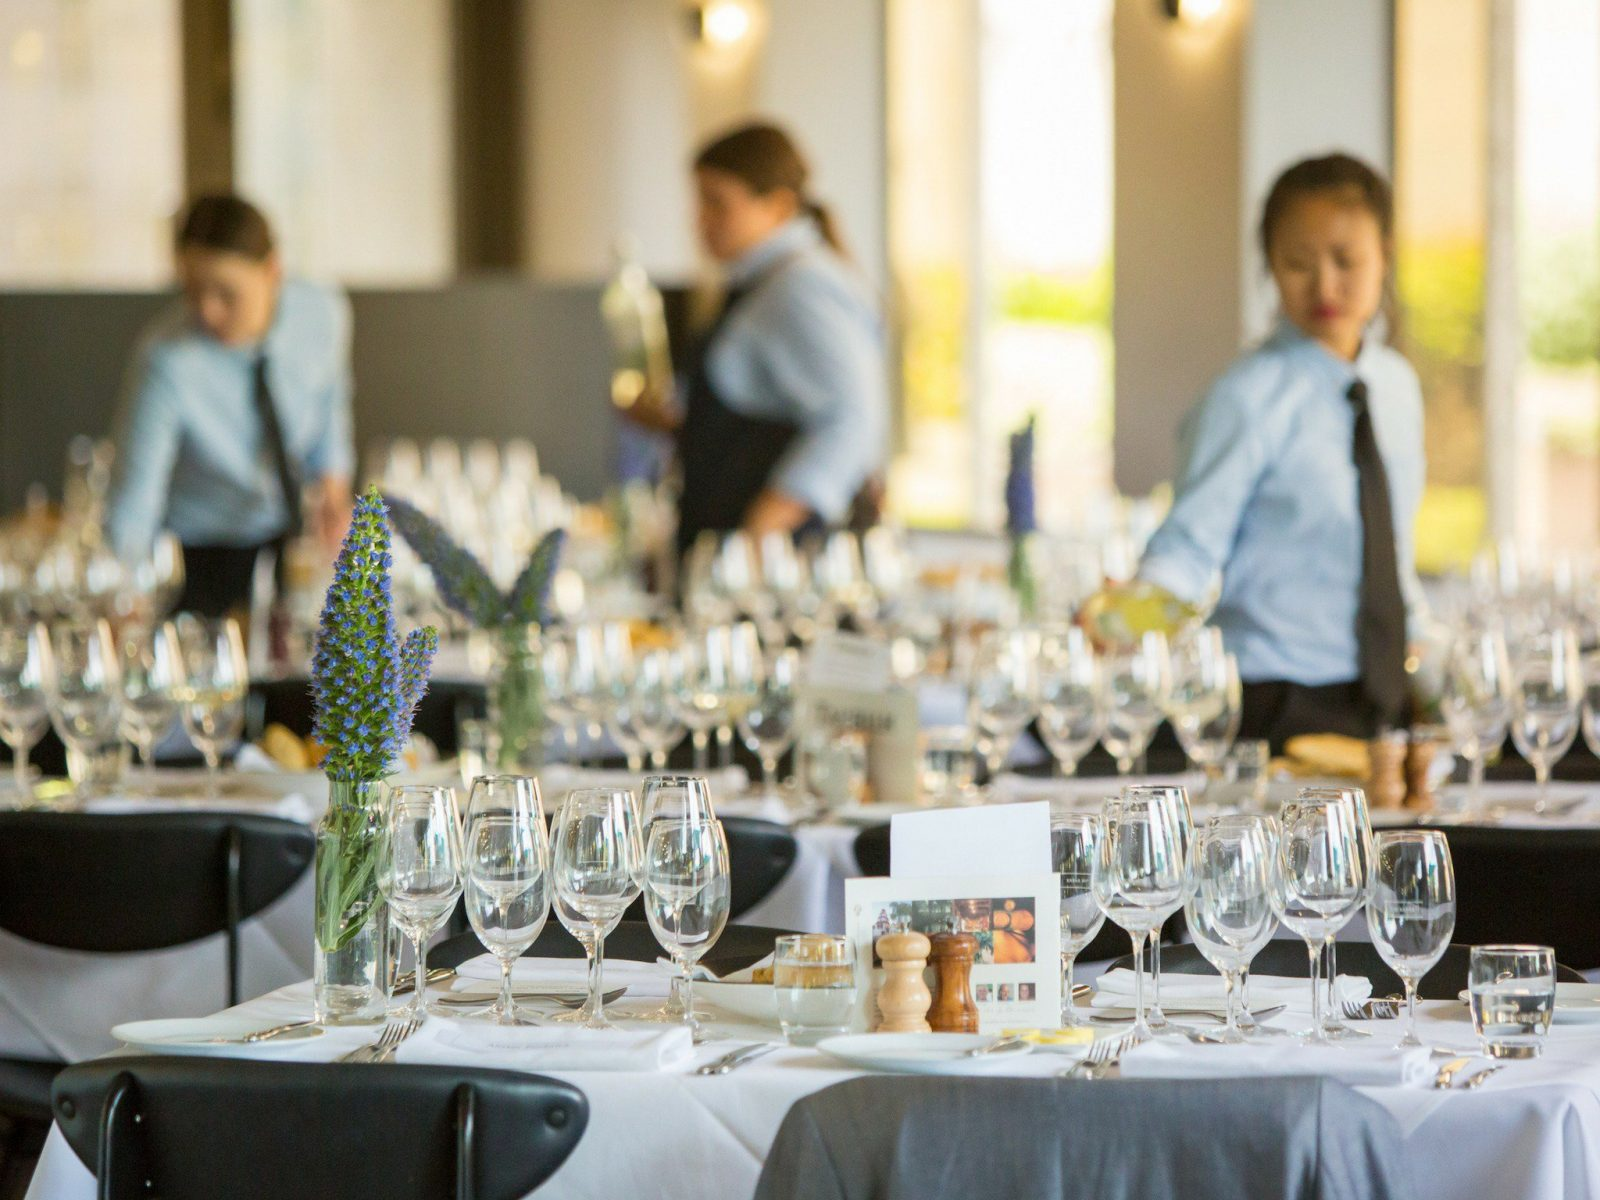 Wine Lunch at The Barre